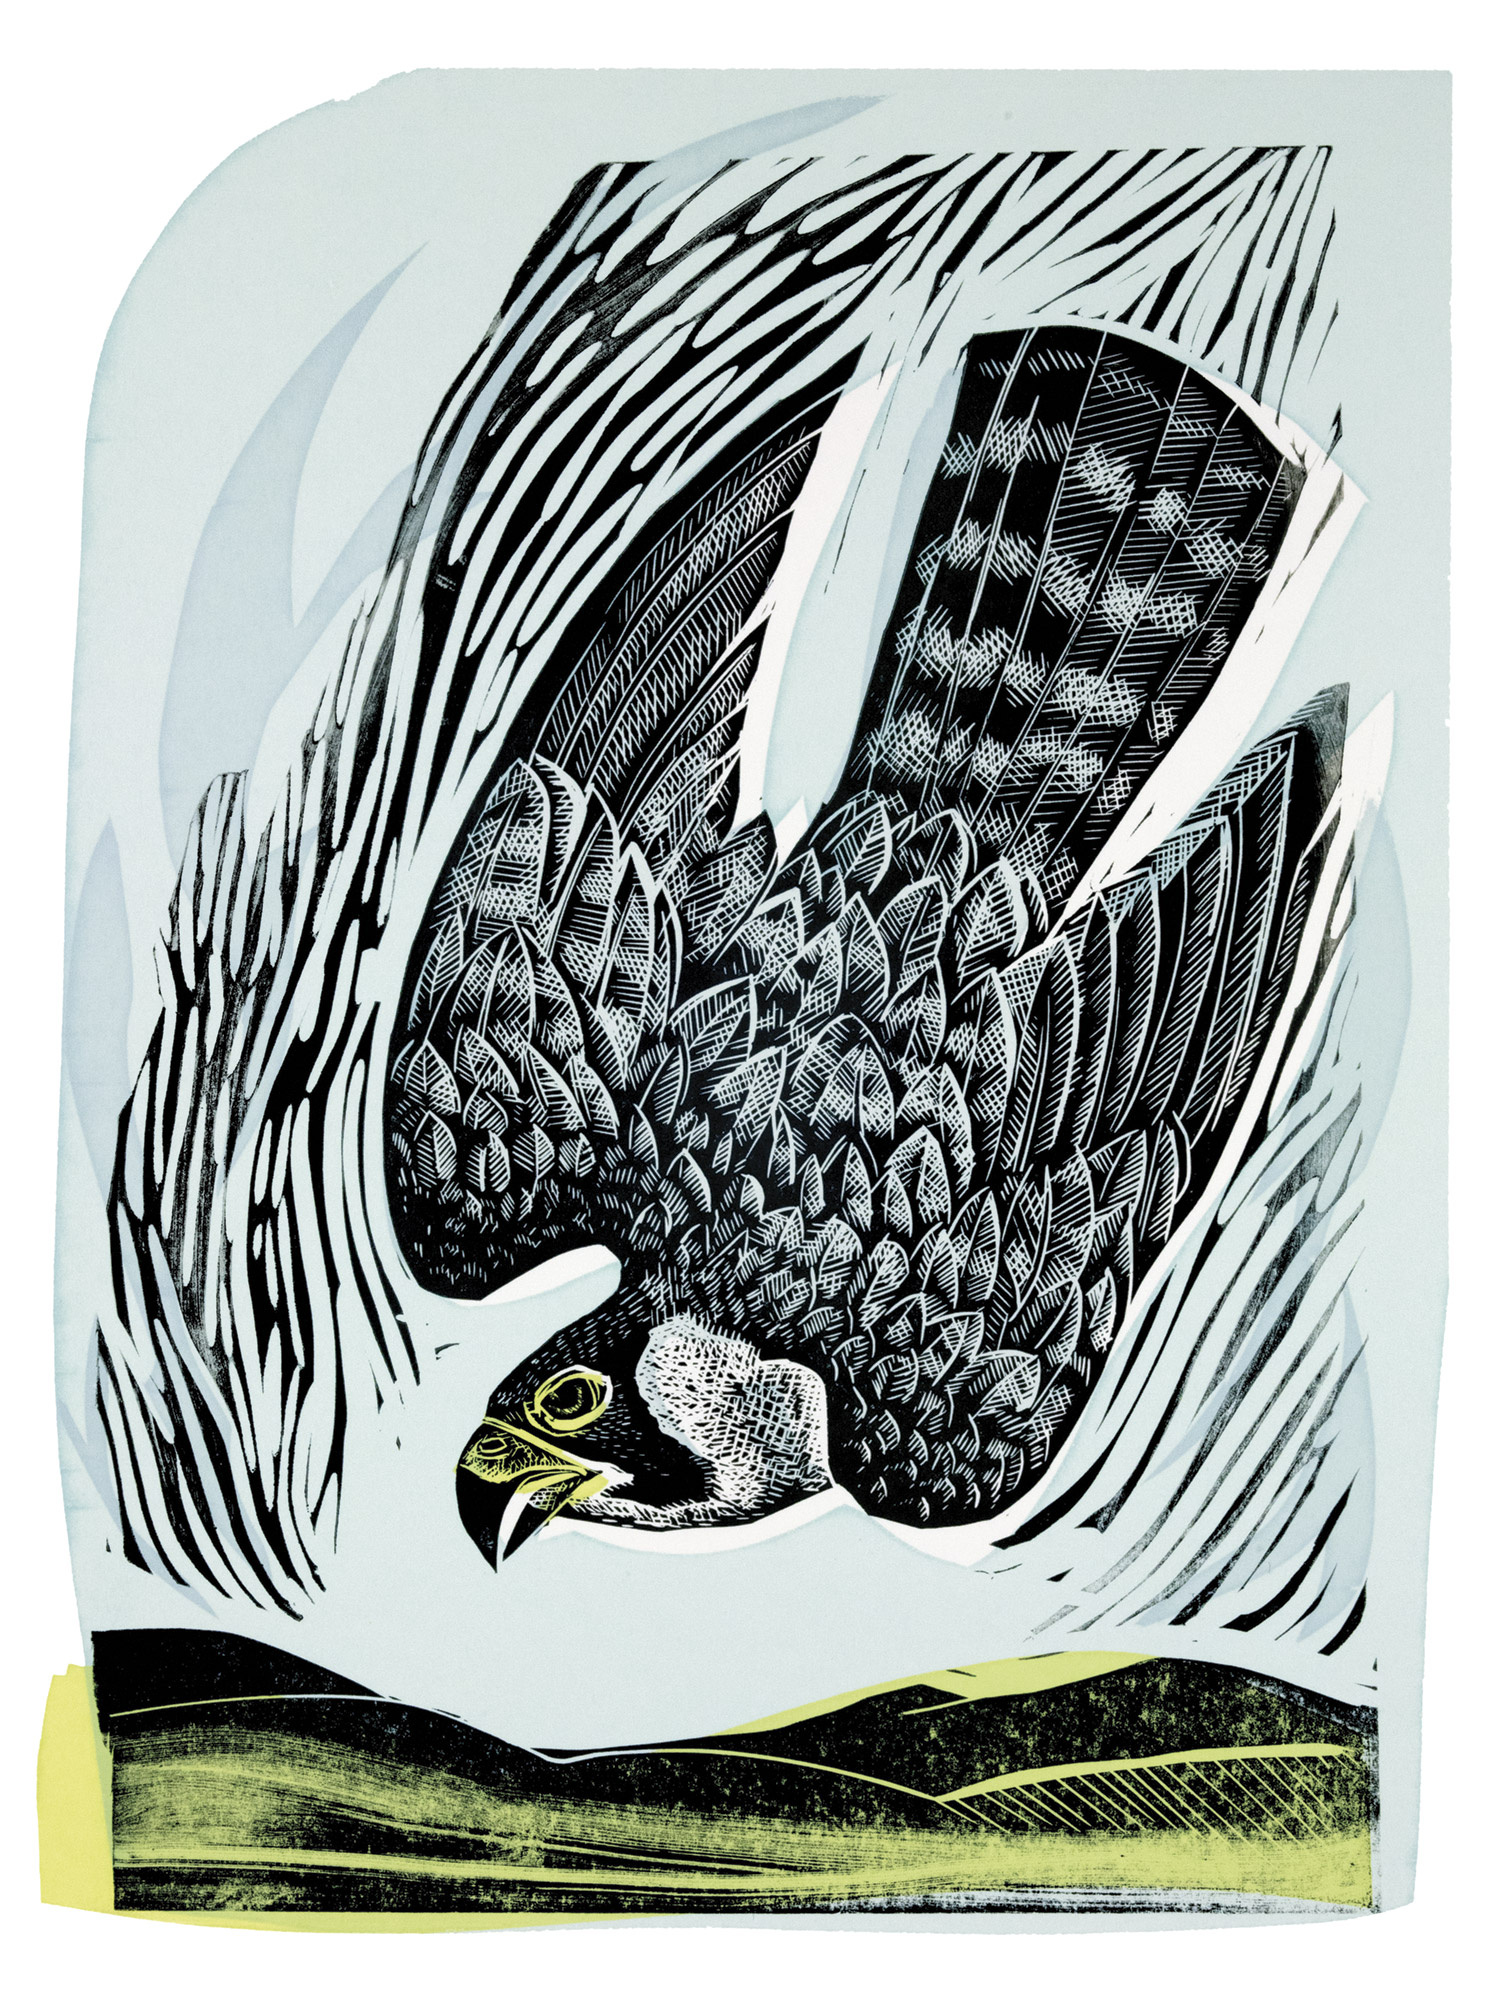 Diving Falcon by Angela Harding